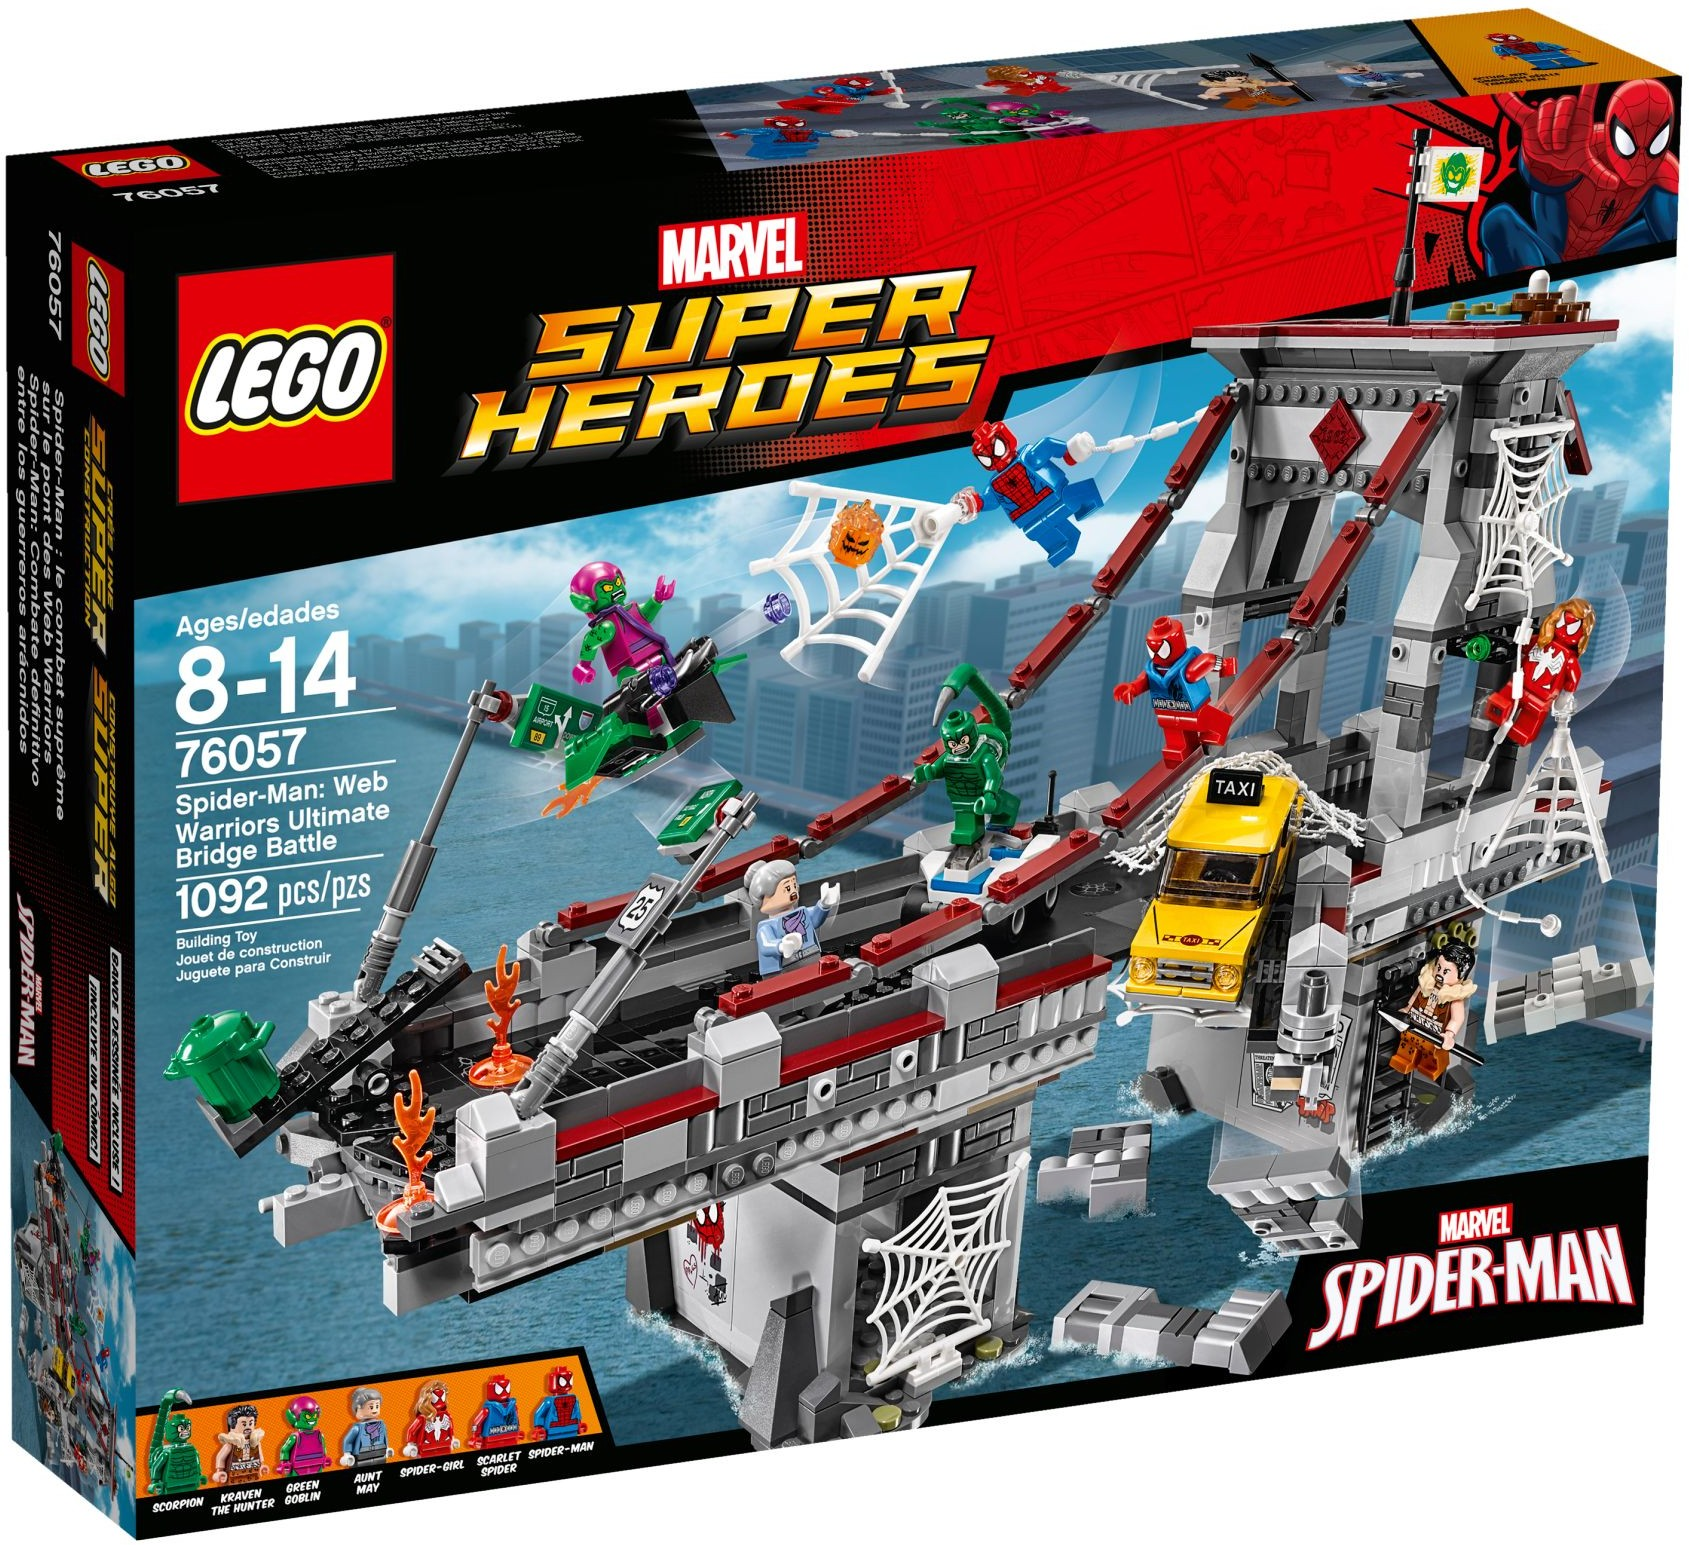 2016 lego marvel web warriors ultimate bridge battle